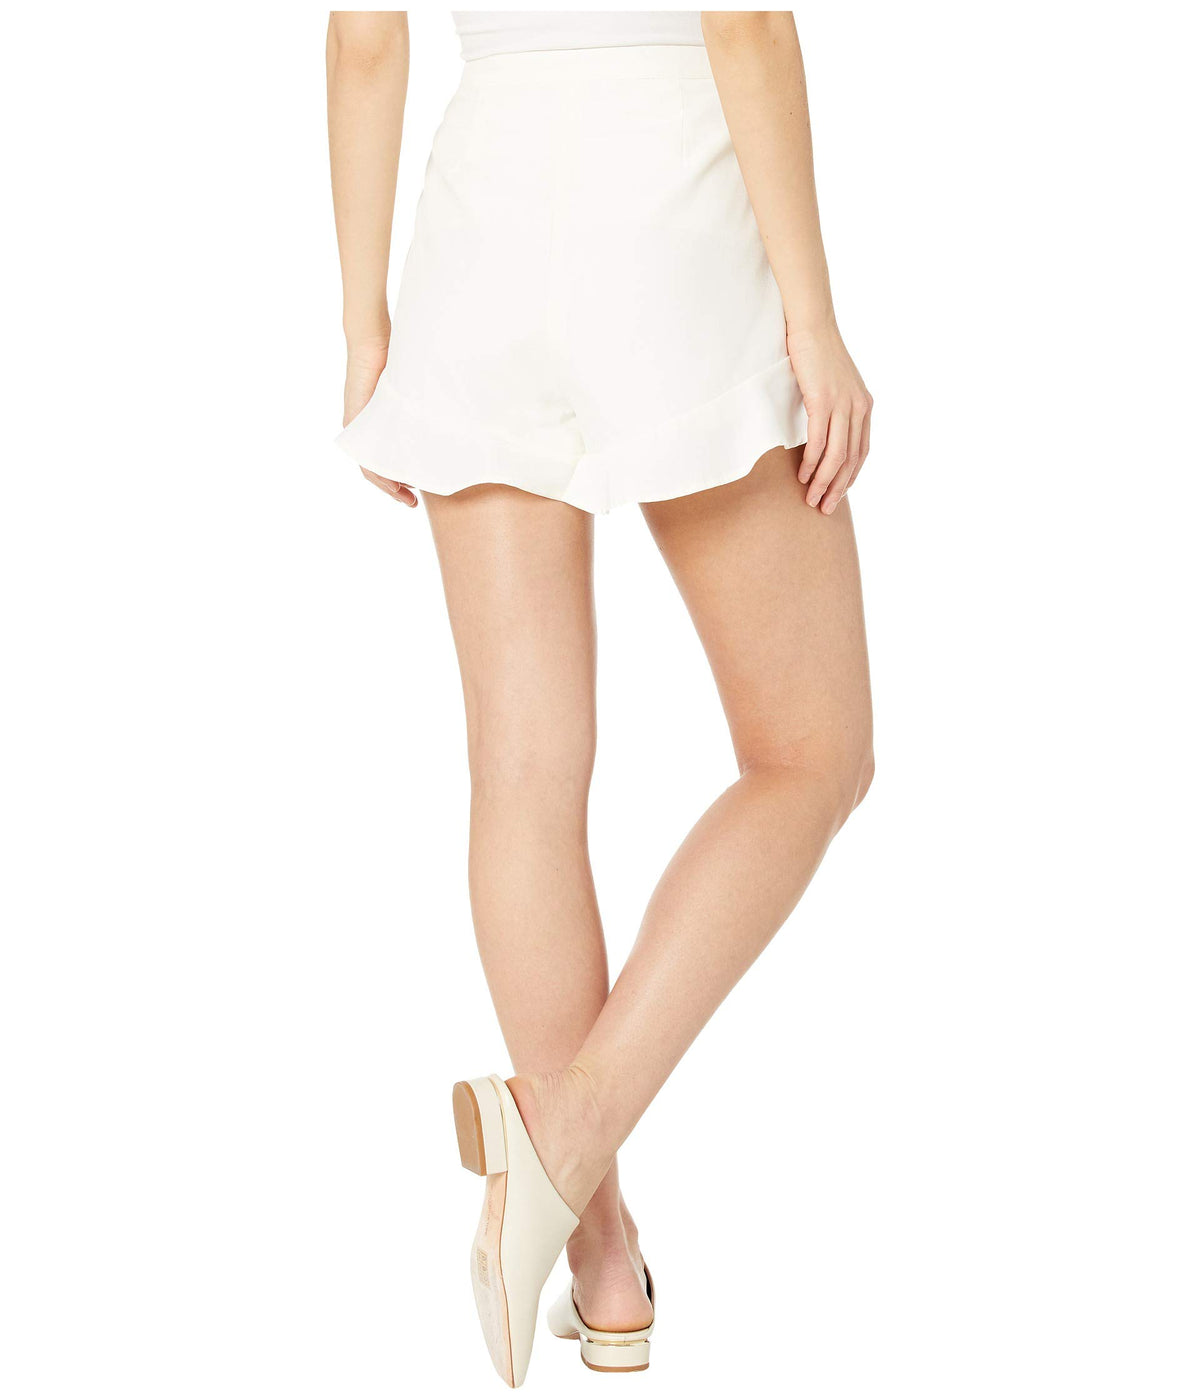 Lancer Satin Shorts with Ruffle Legs